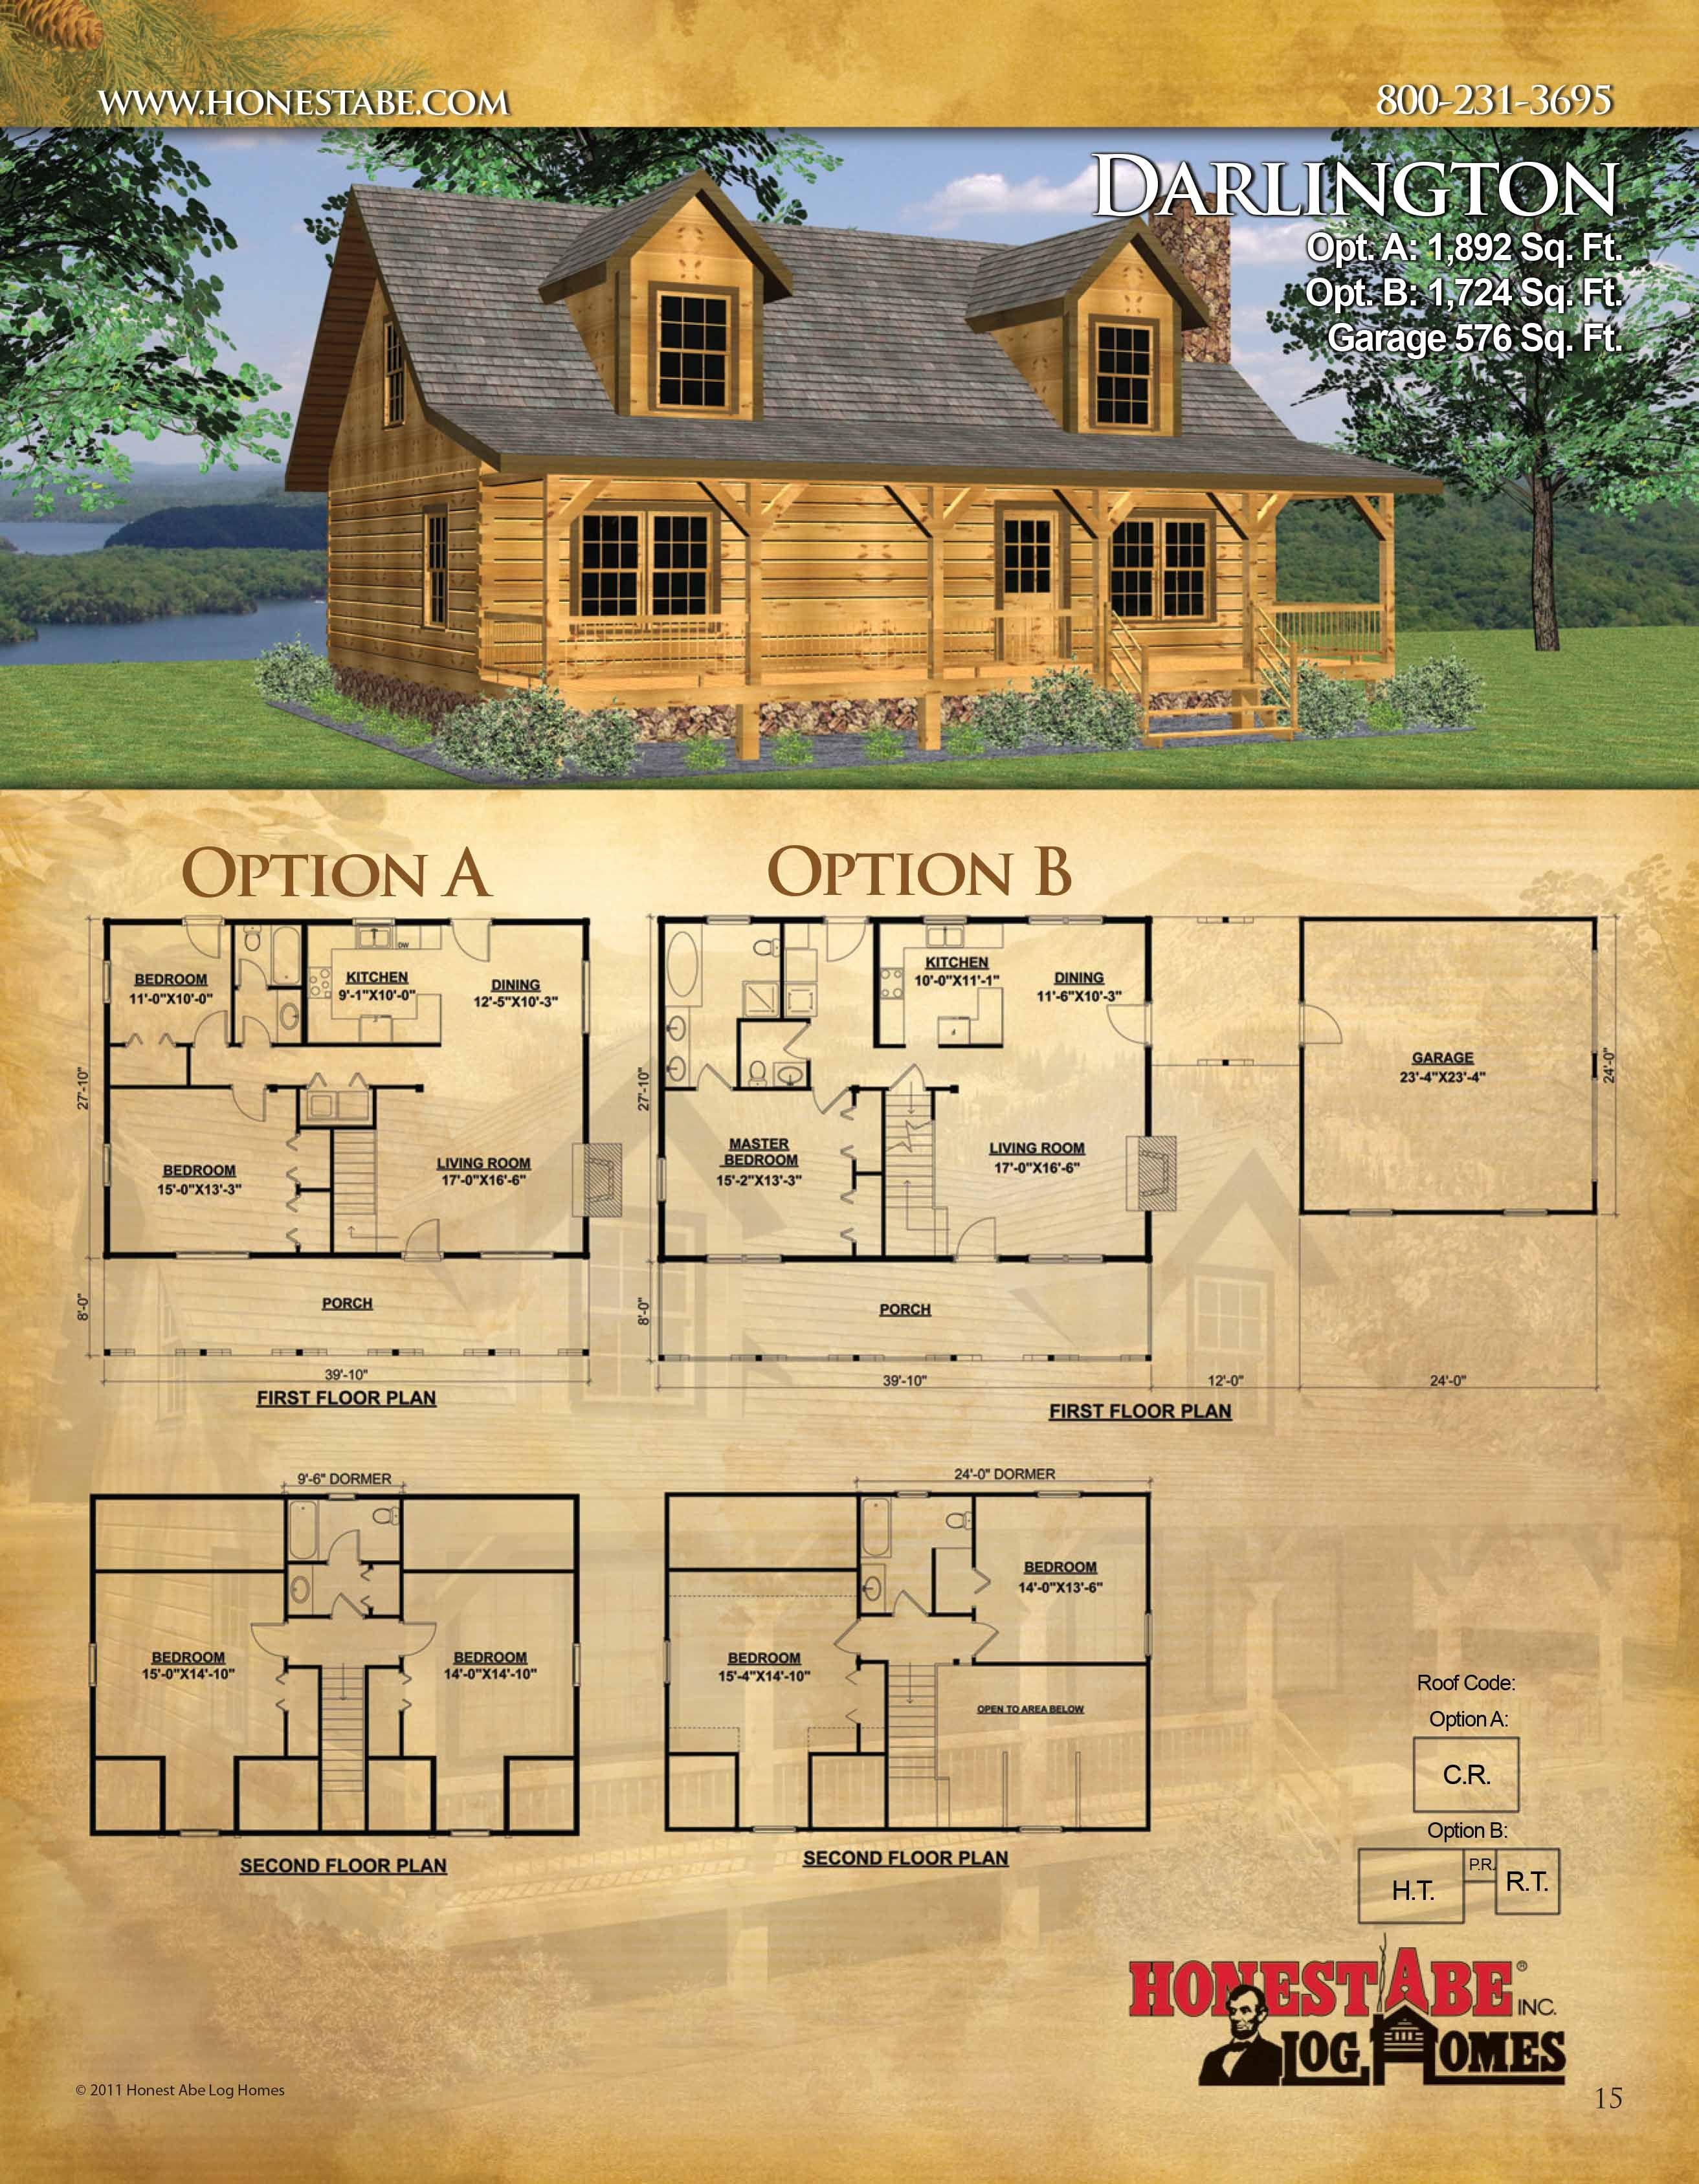 Browse Floor Plans For Our Custom Log Cabin Homes In 2020 Log Home Floor Plans Log Cabin Plans Cabin House Plans